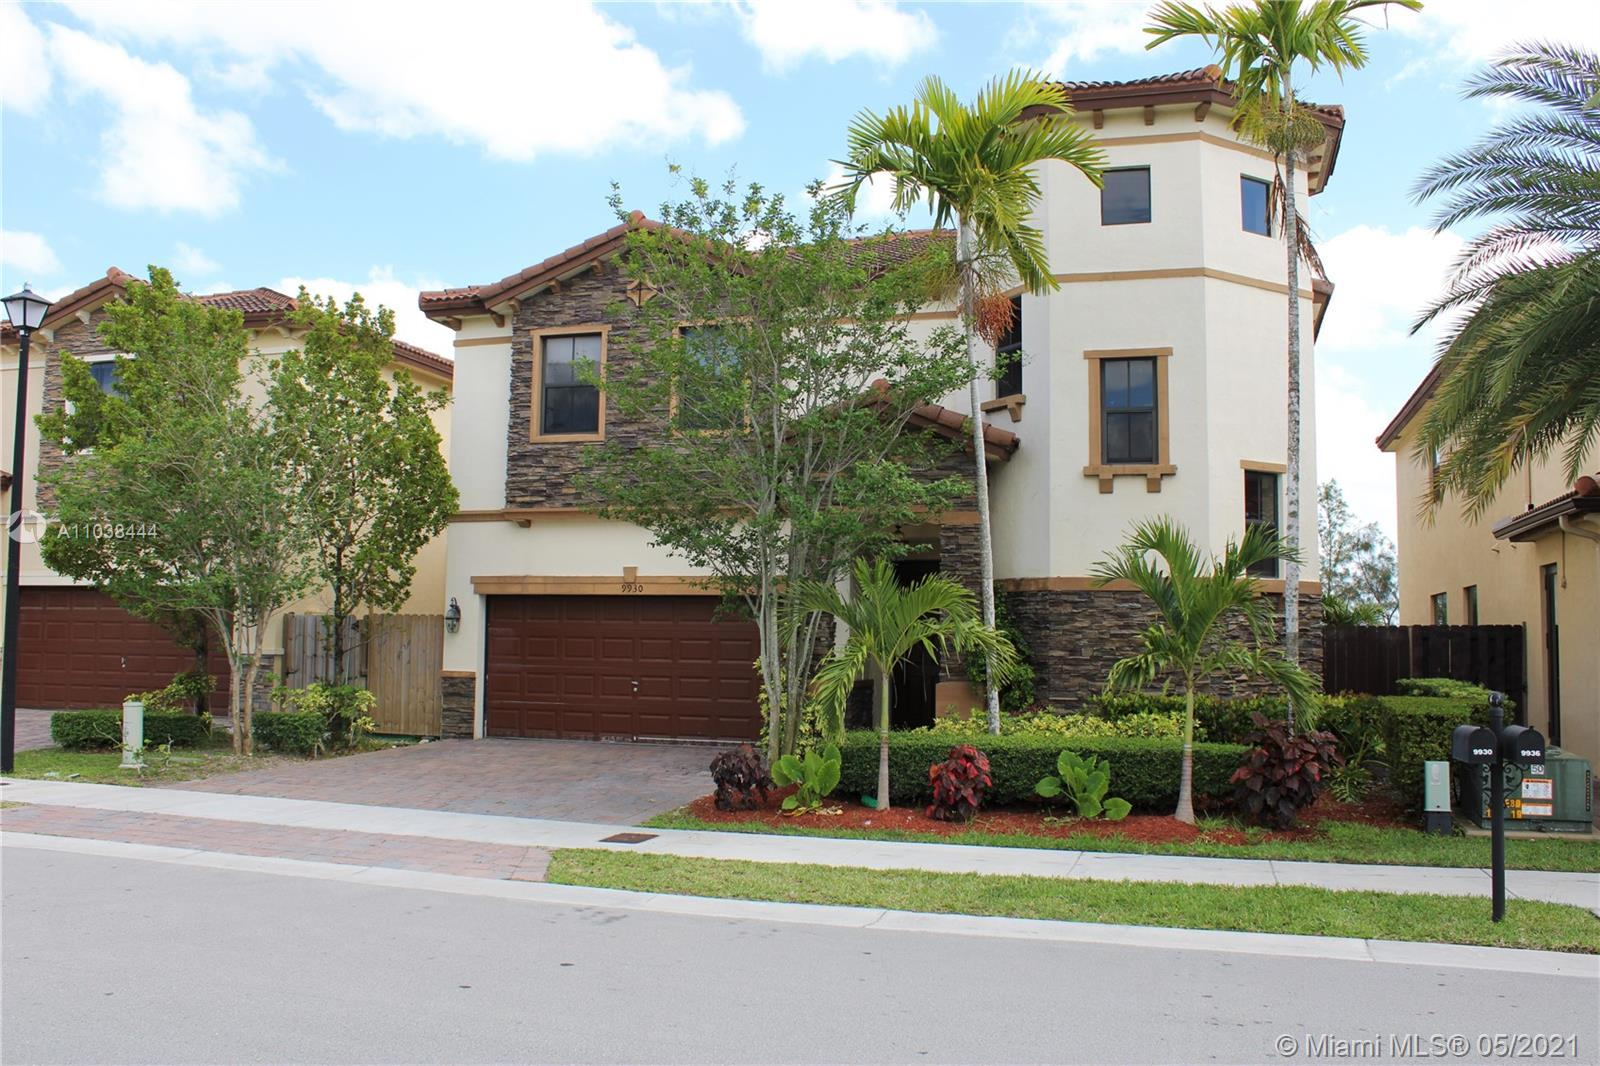 Grand Bay #9930 - 9930 NW 86th Ter #9930, Doral, FL 33178